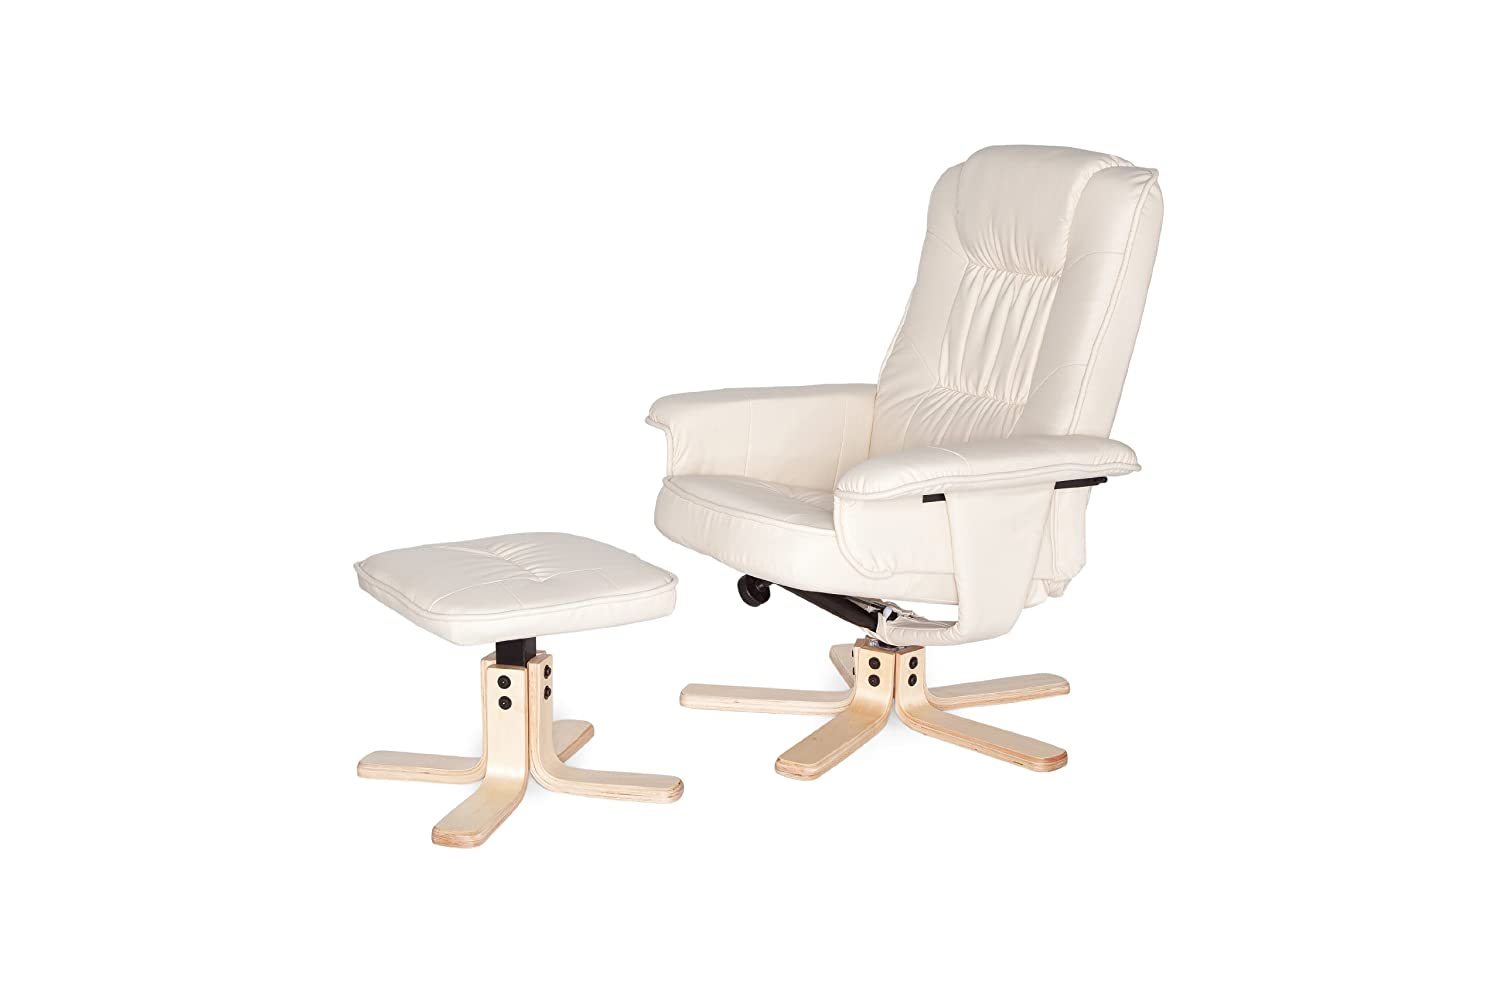 Amstyle Fernsehsessel Comfort Tv Design Relax Sessel Wohnzimmer